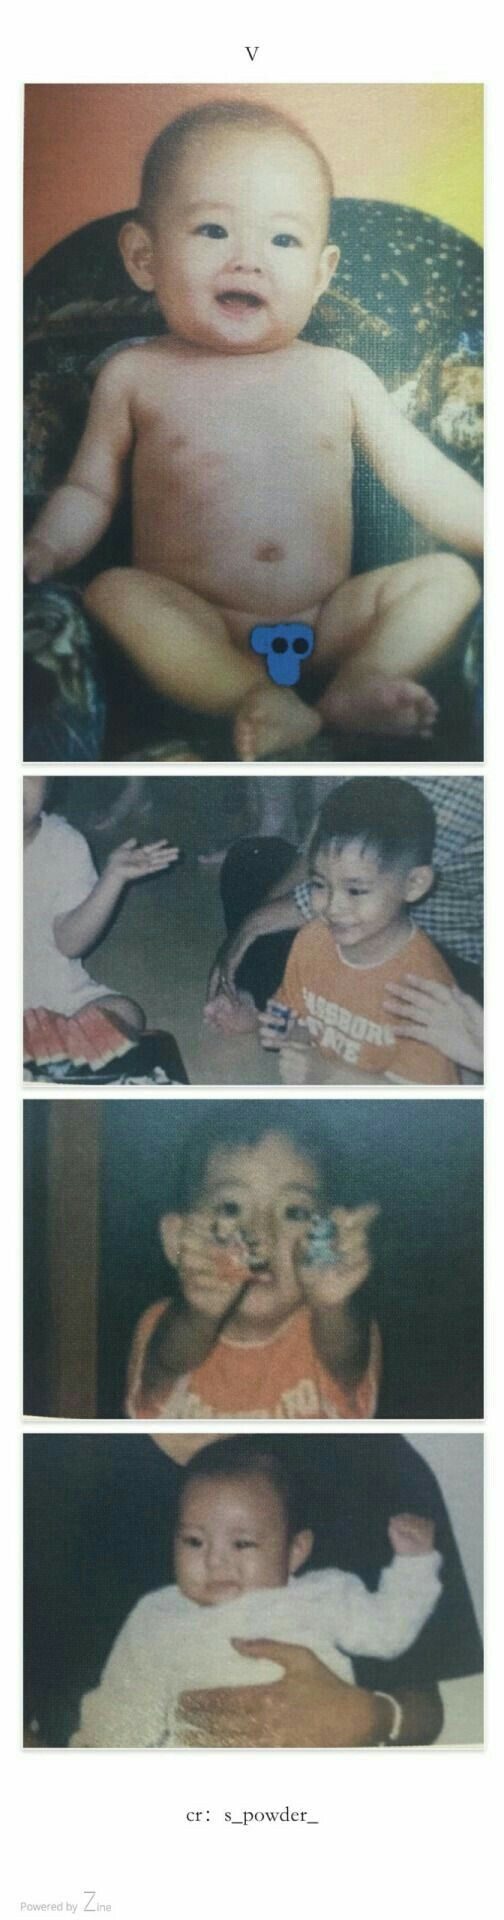 Omo tae tae was so adorable as a baby and he still is